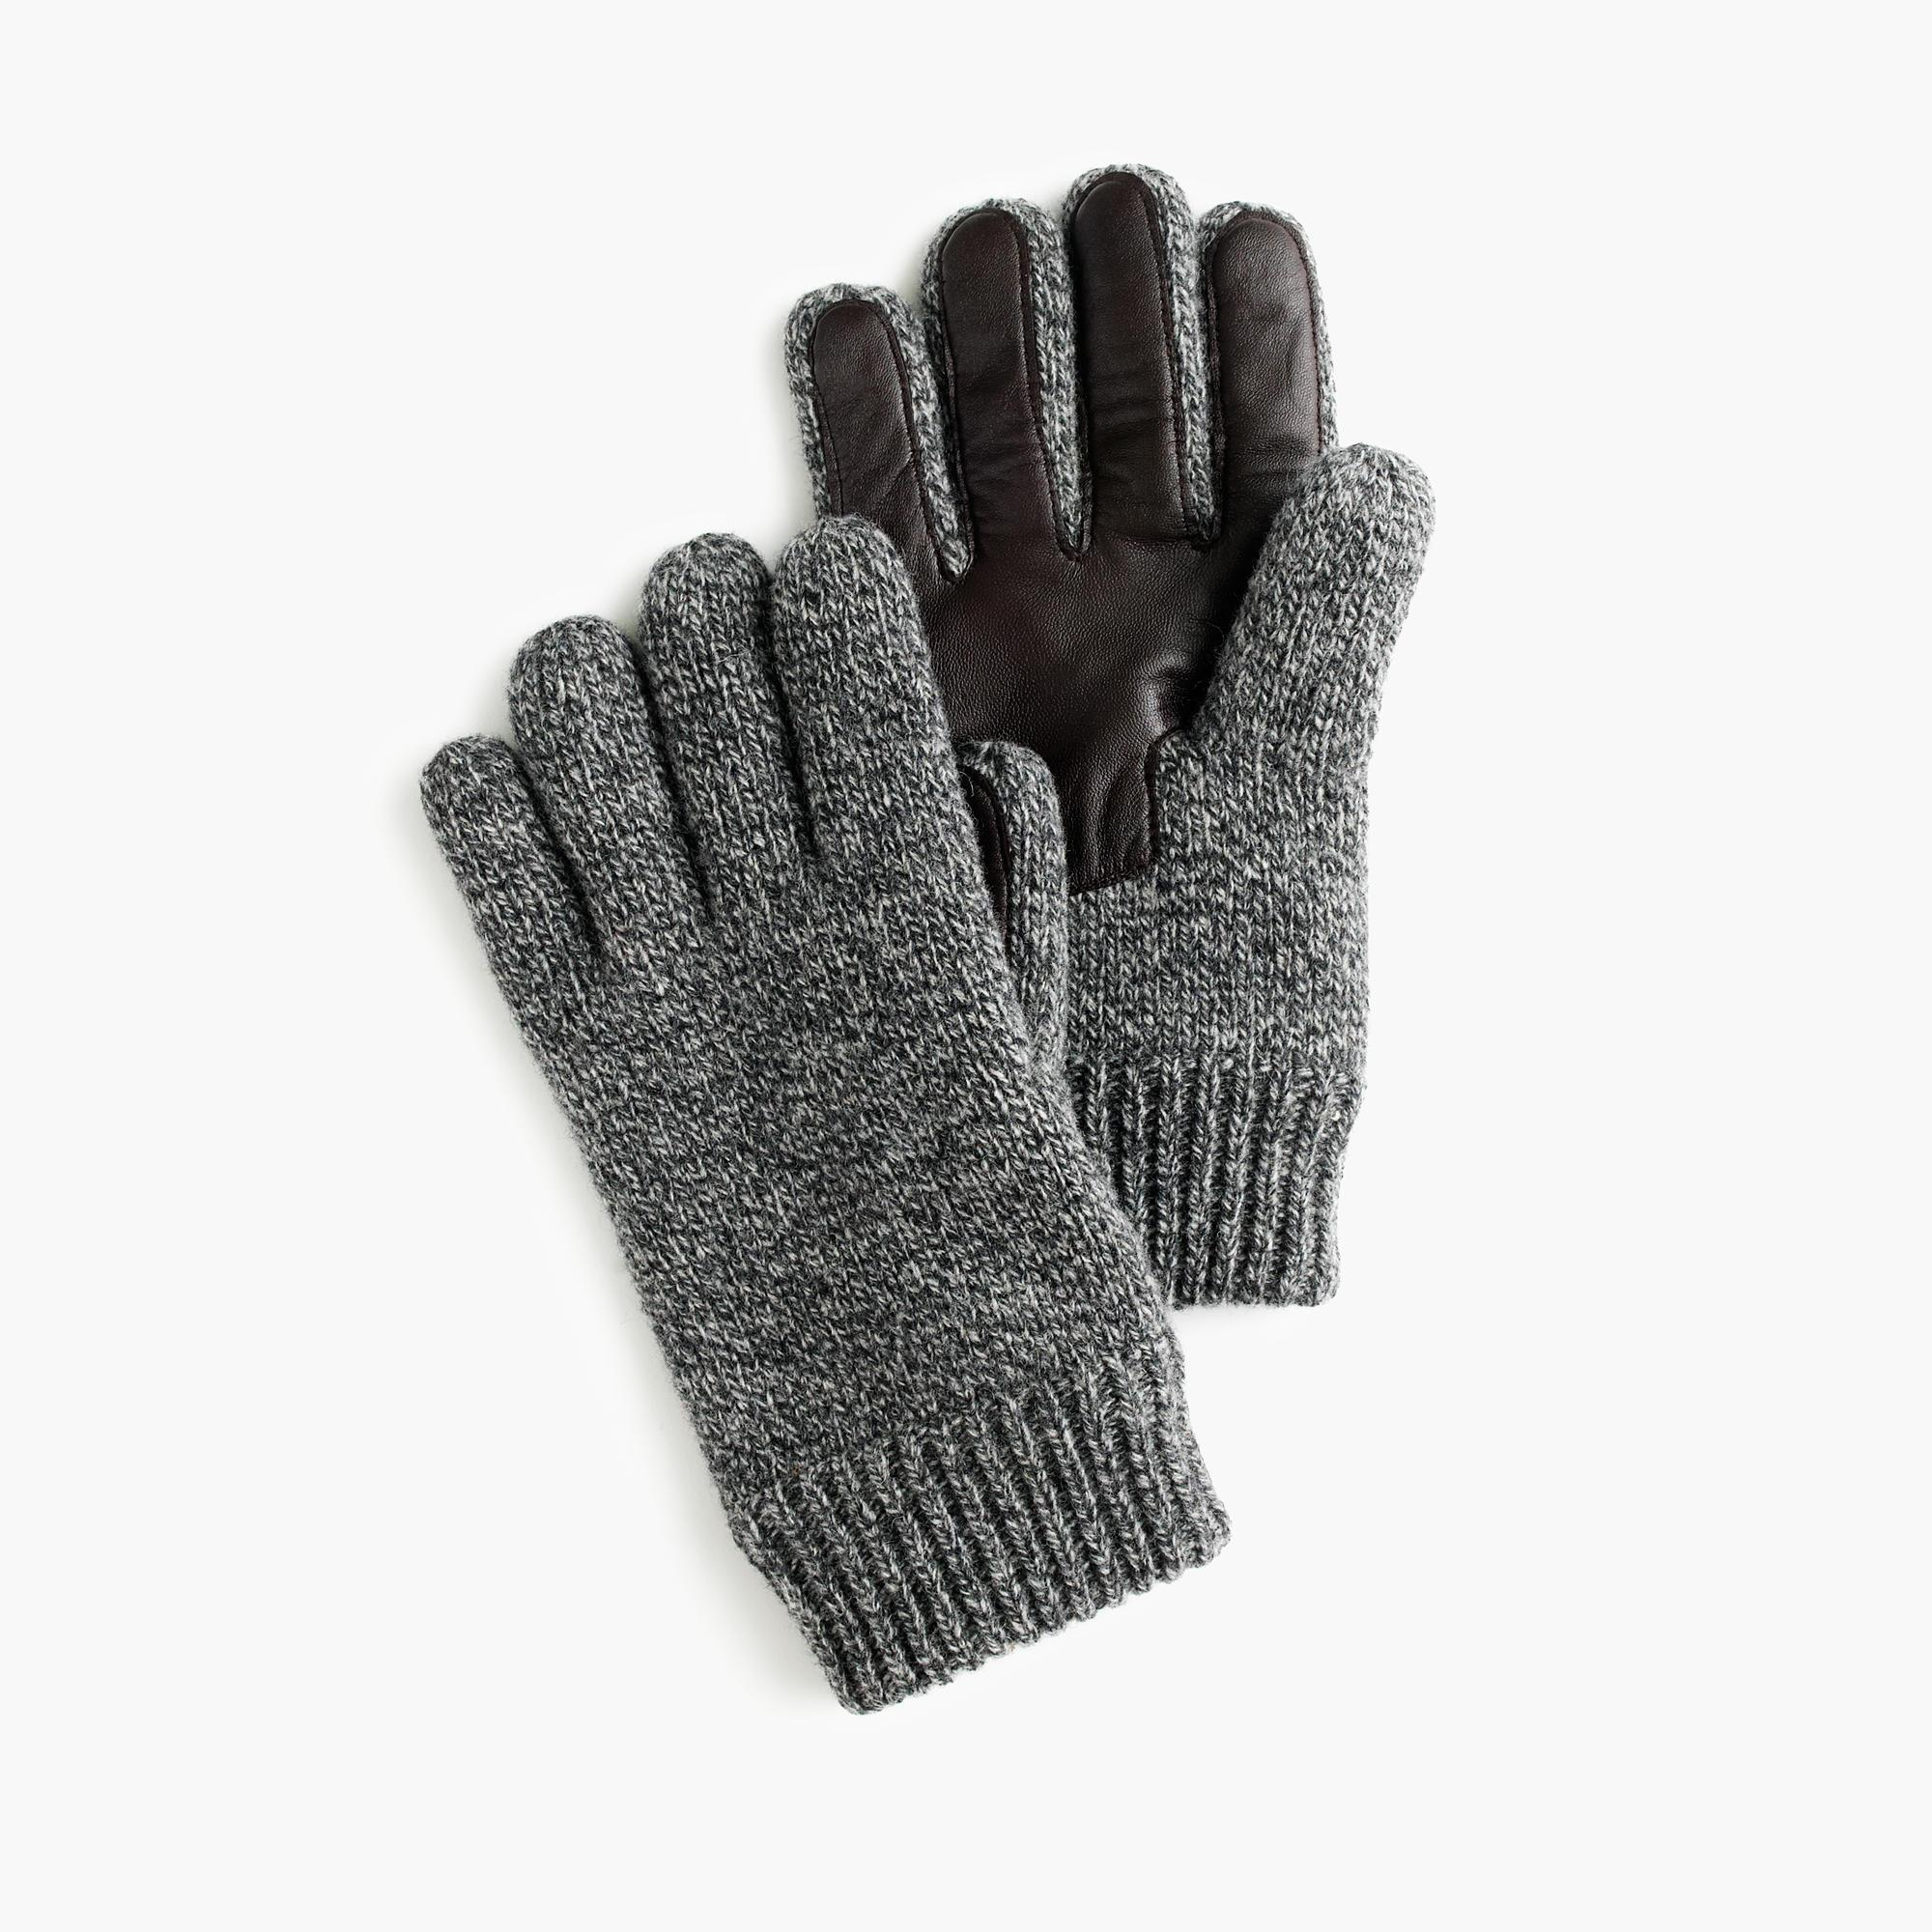 Iphone Gloves Uk